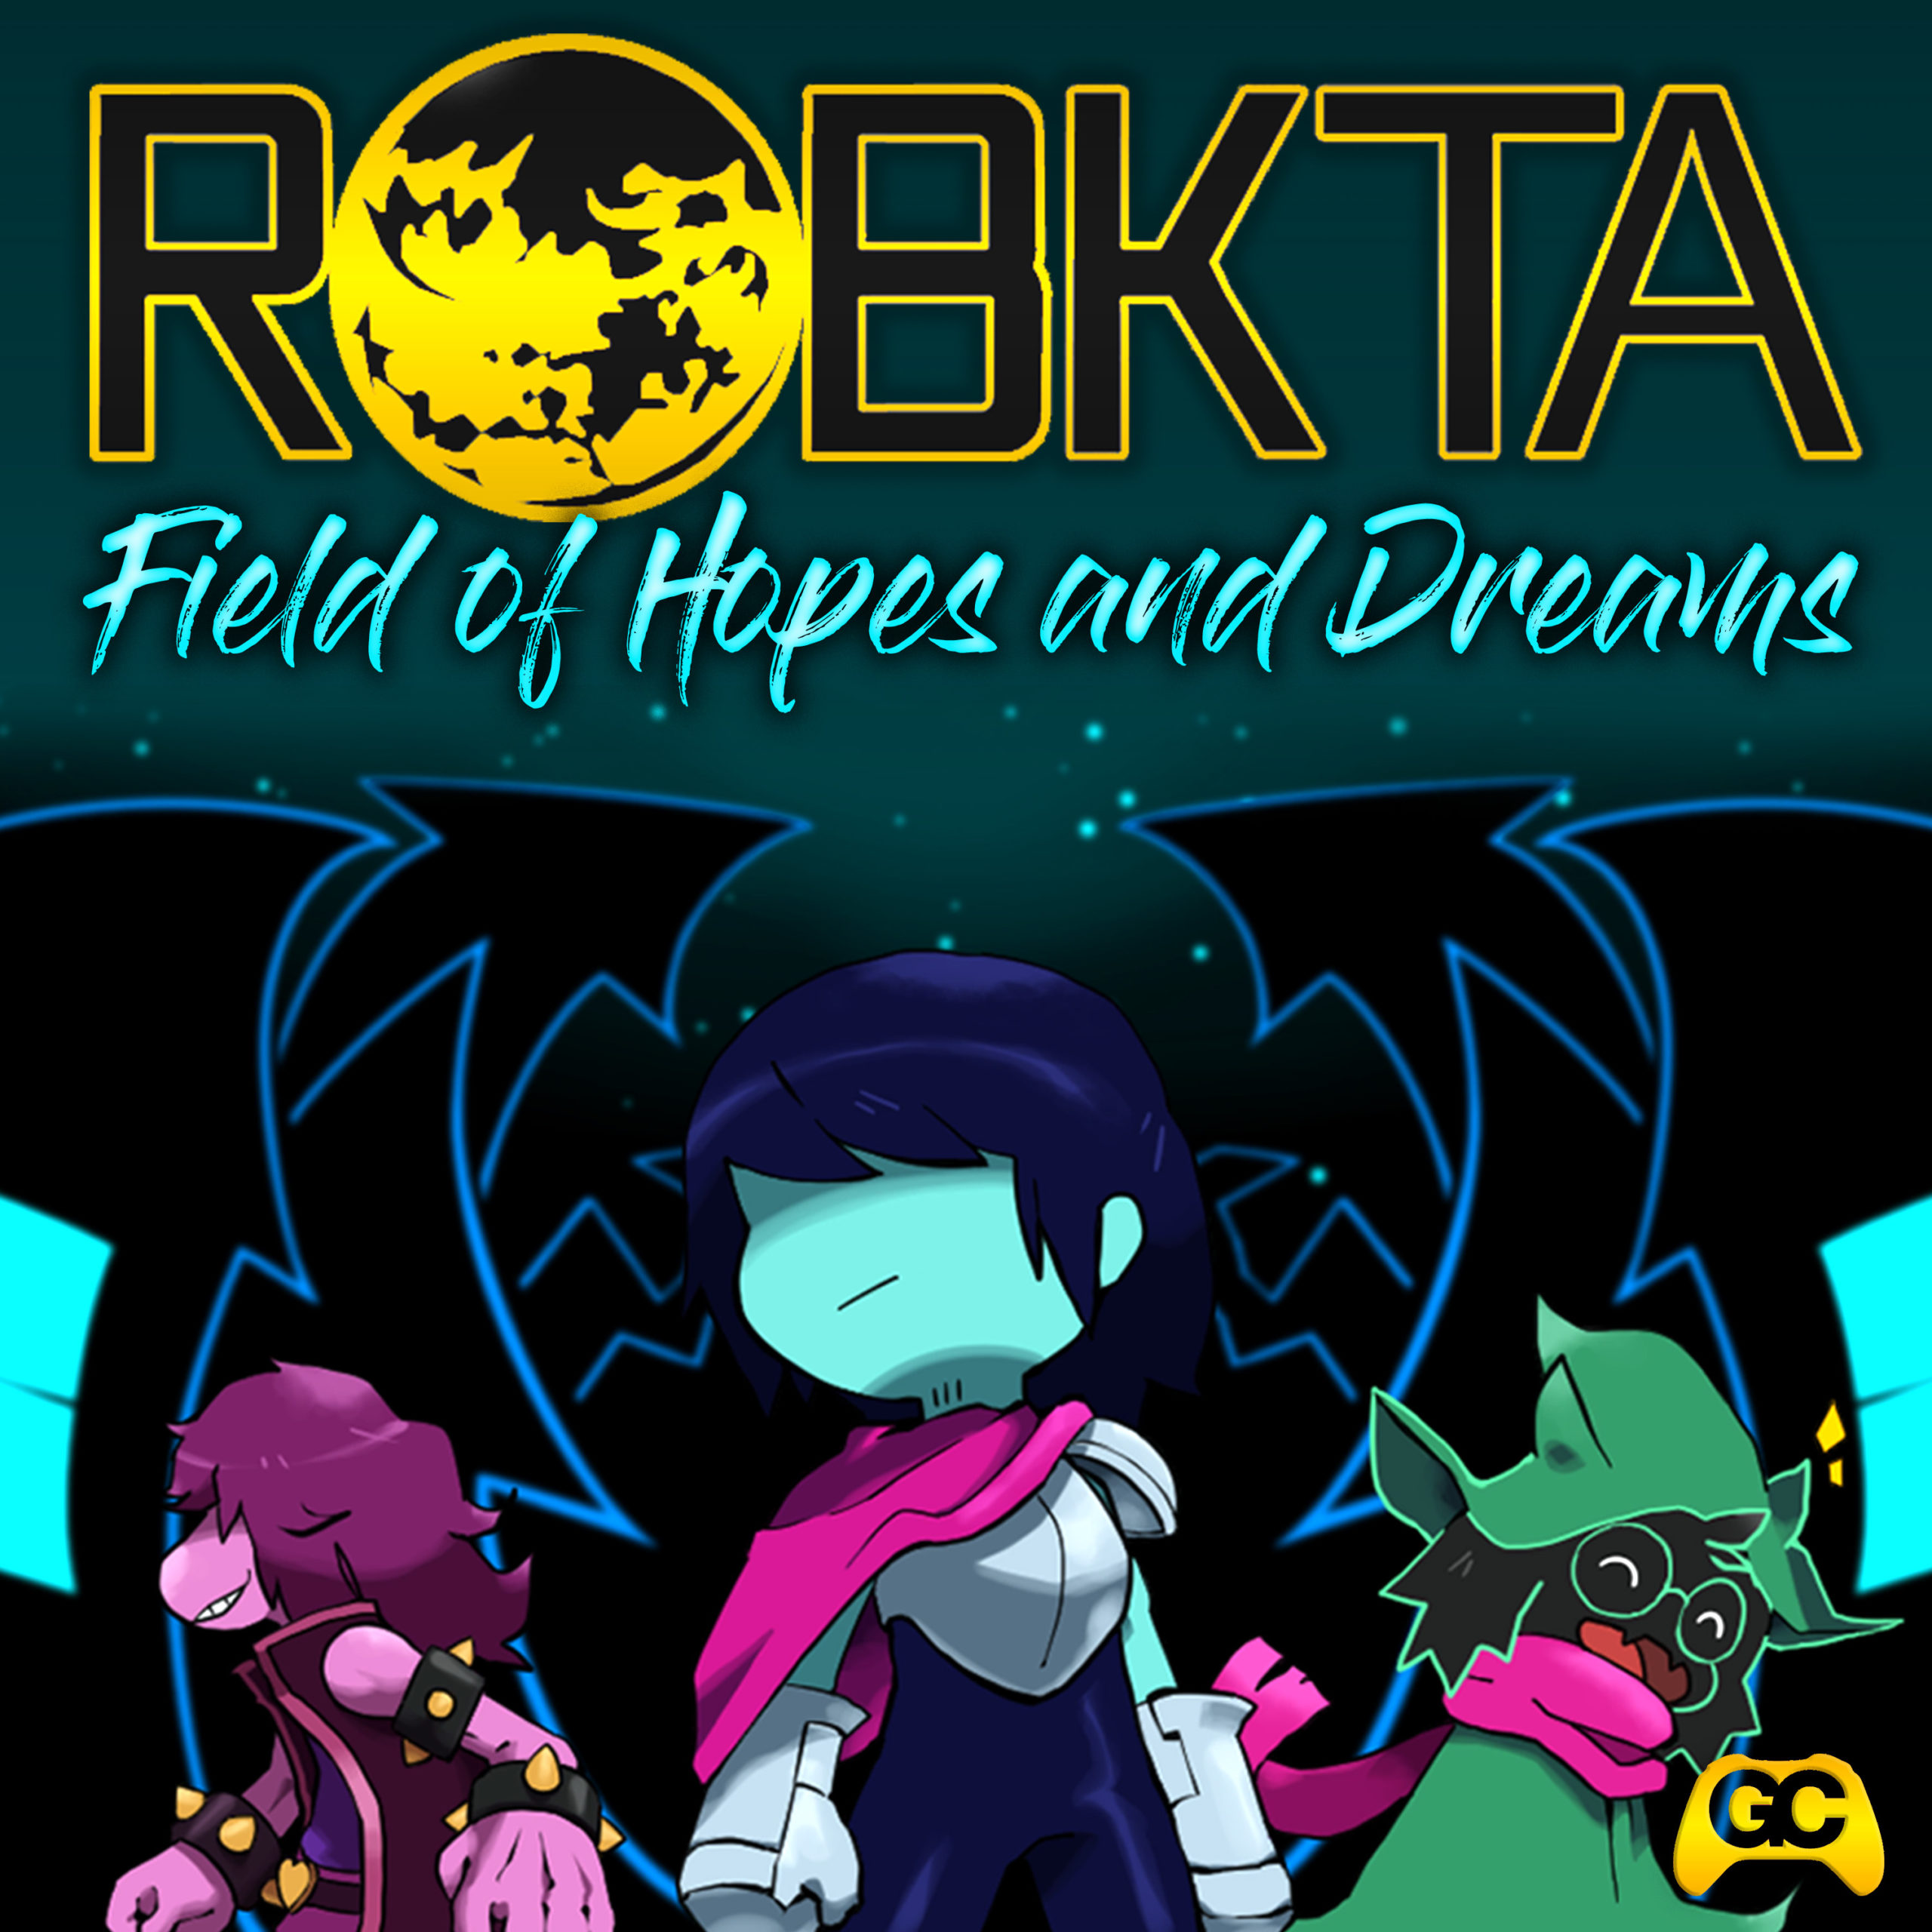 """Field of Hopes and Dreams (From """"Deltarune"""") – RoBKTA"""